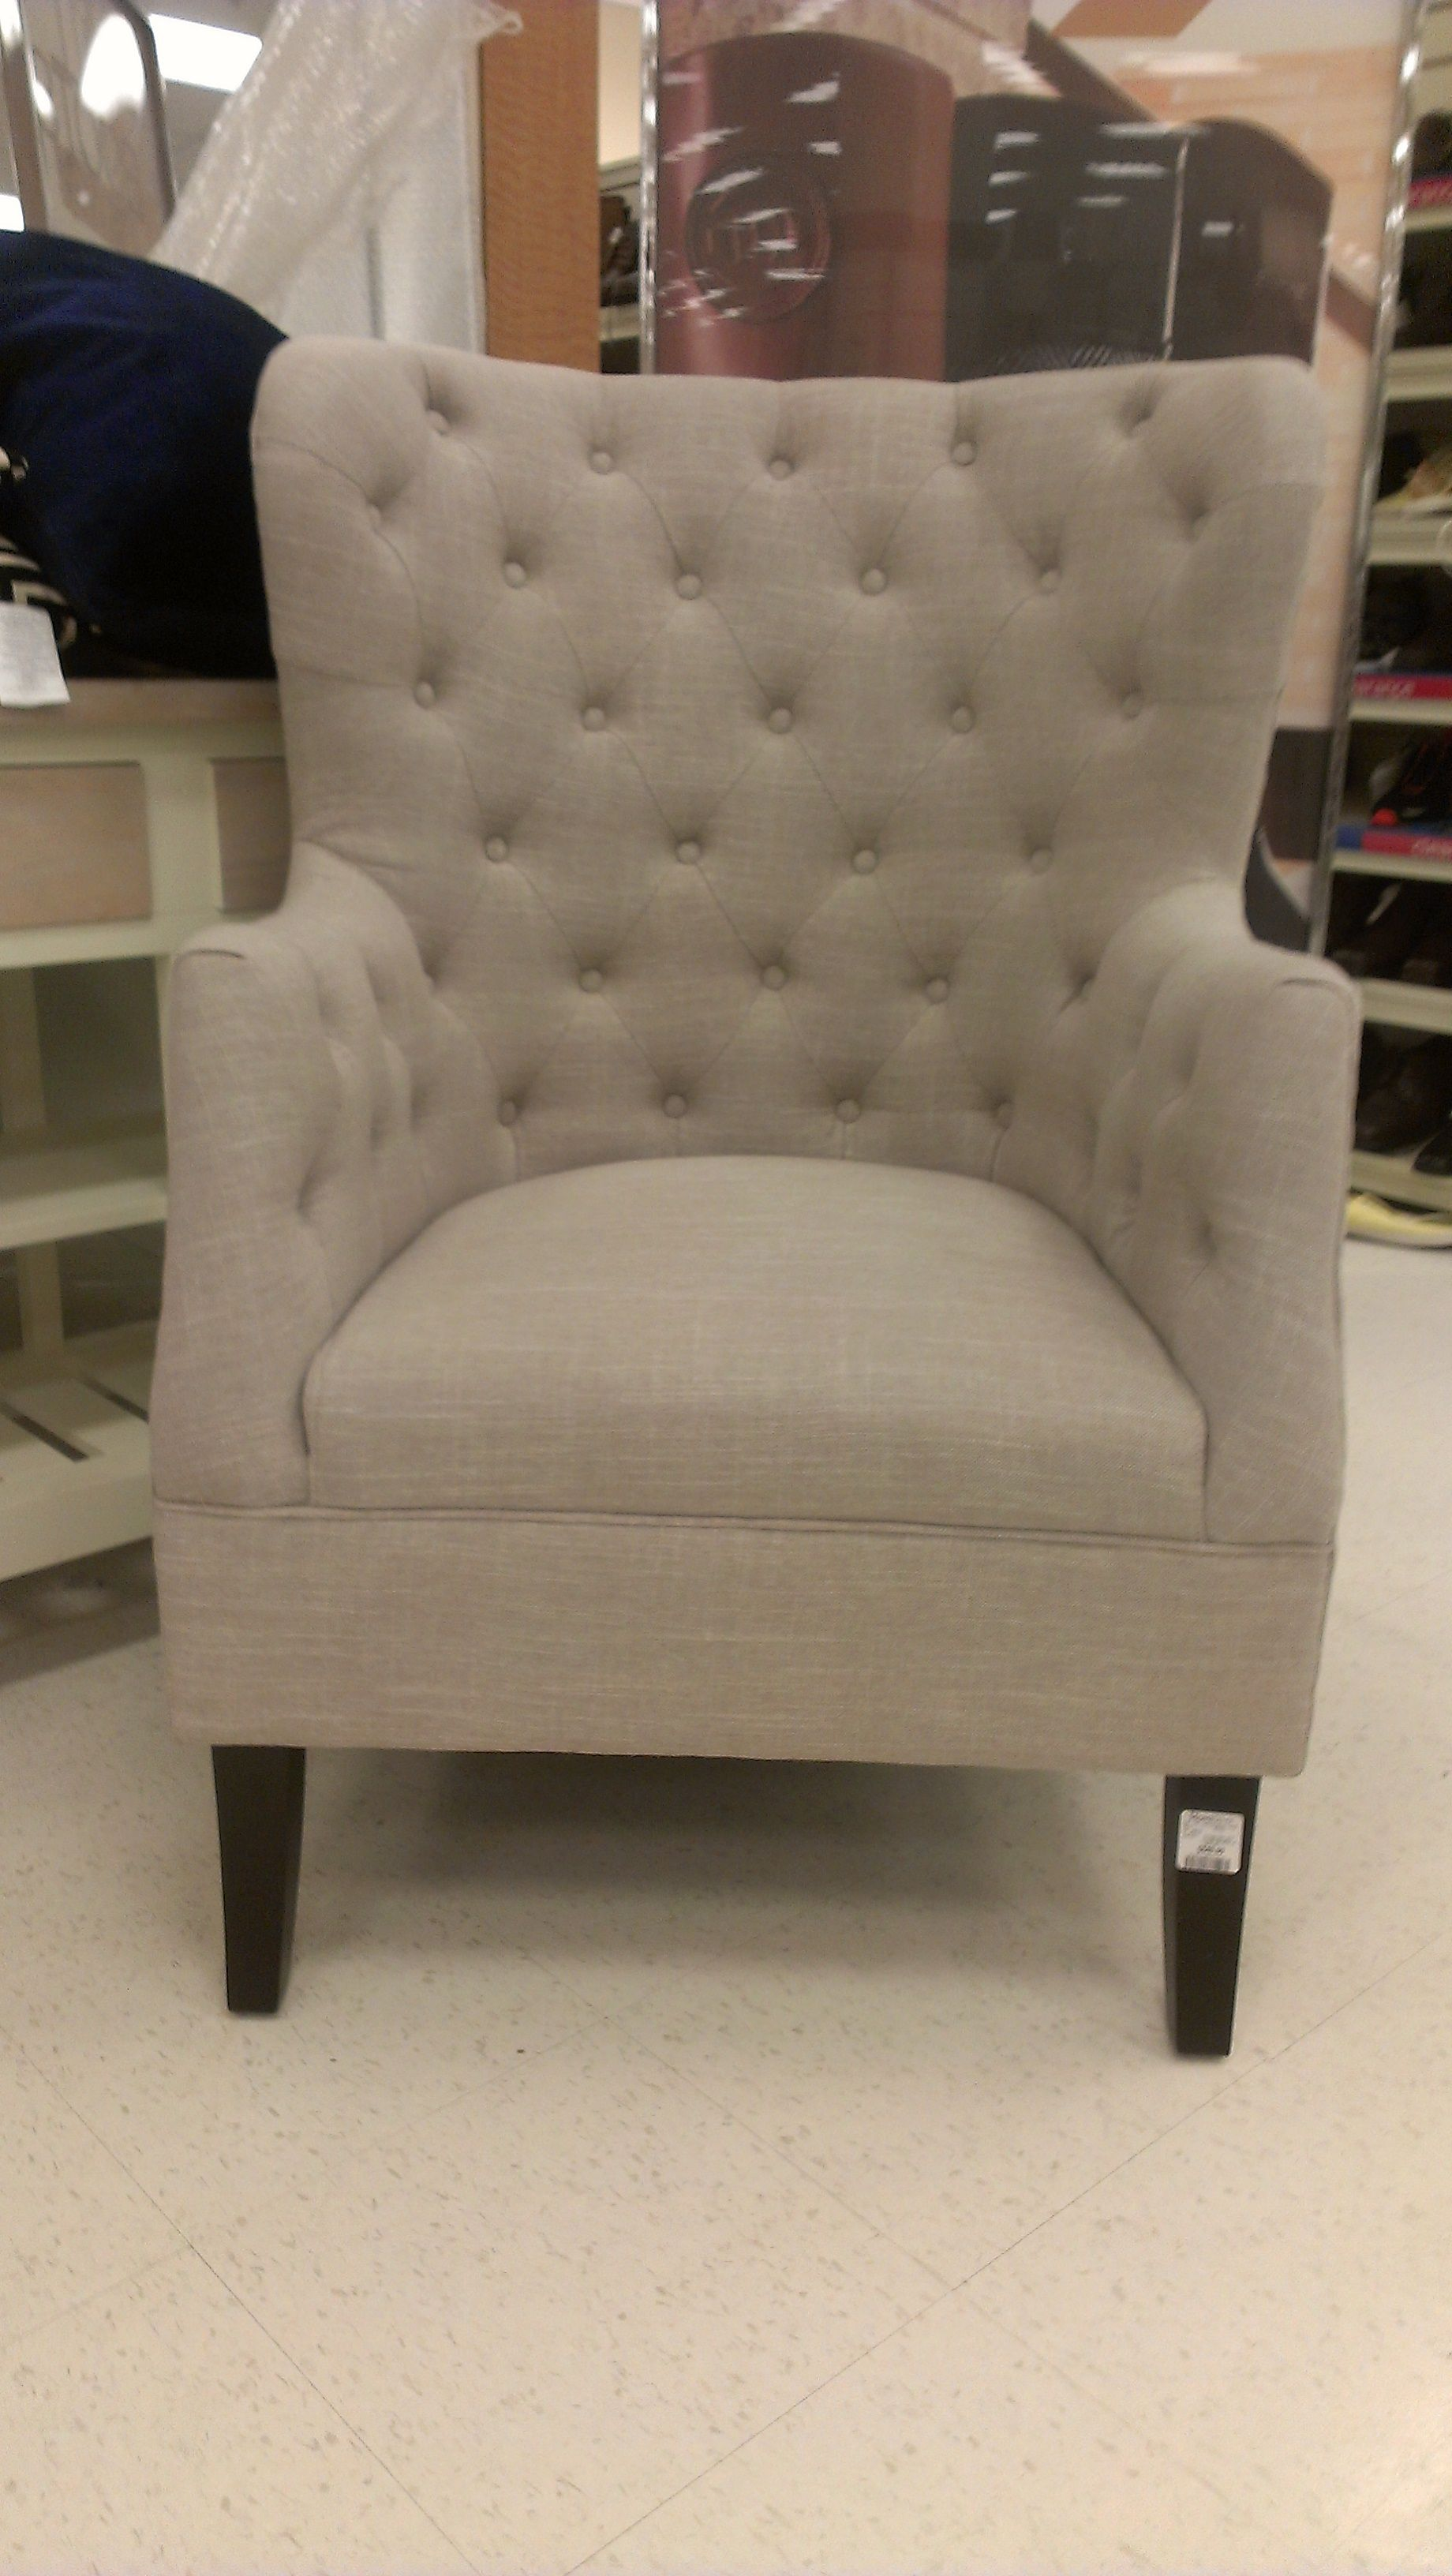 Best Chair Homesense Homesensestyle Home Decor Furniture 400 x 300